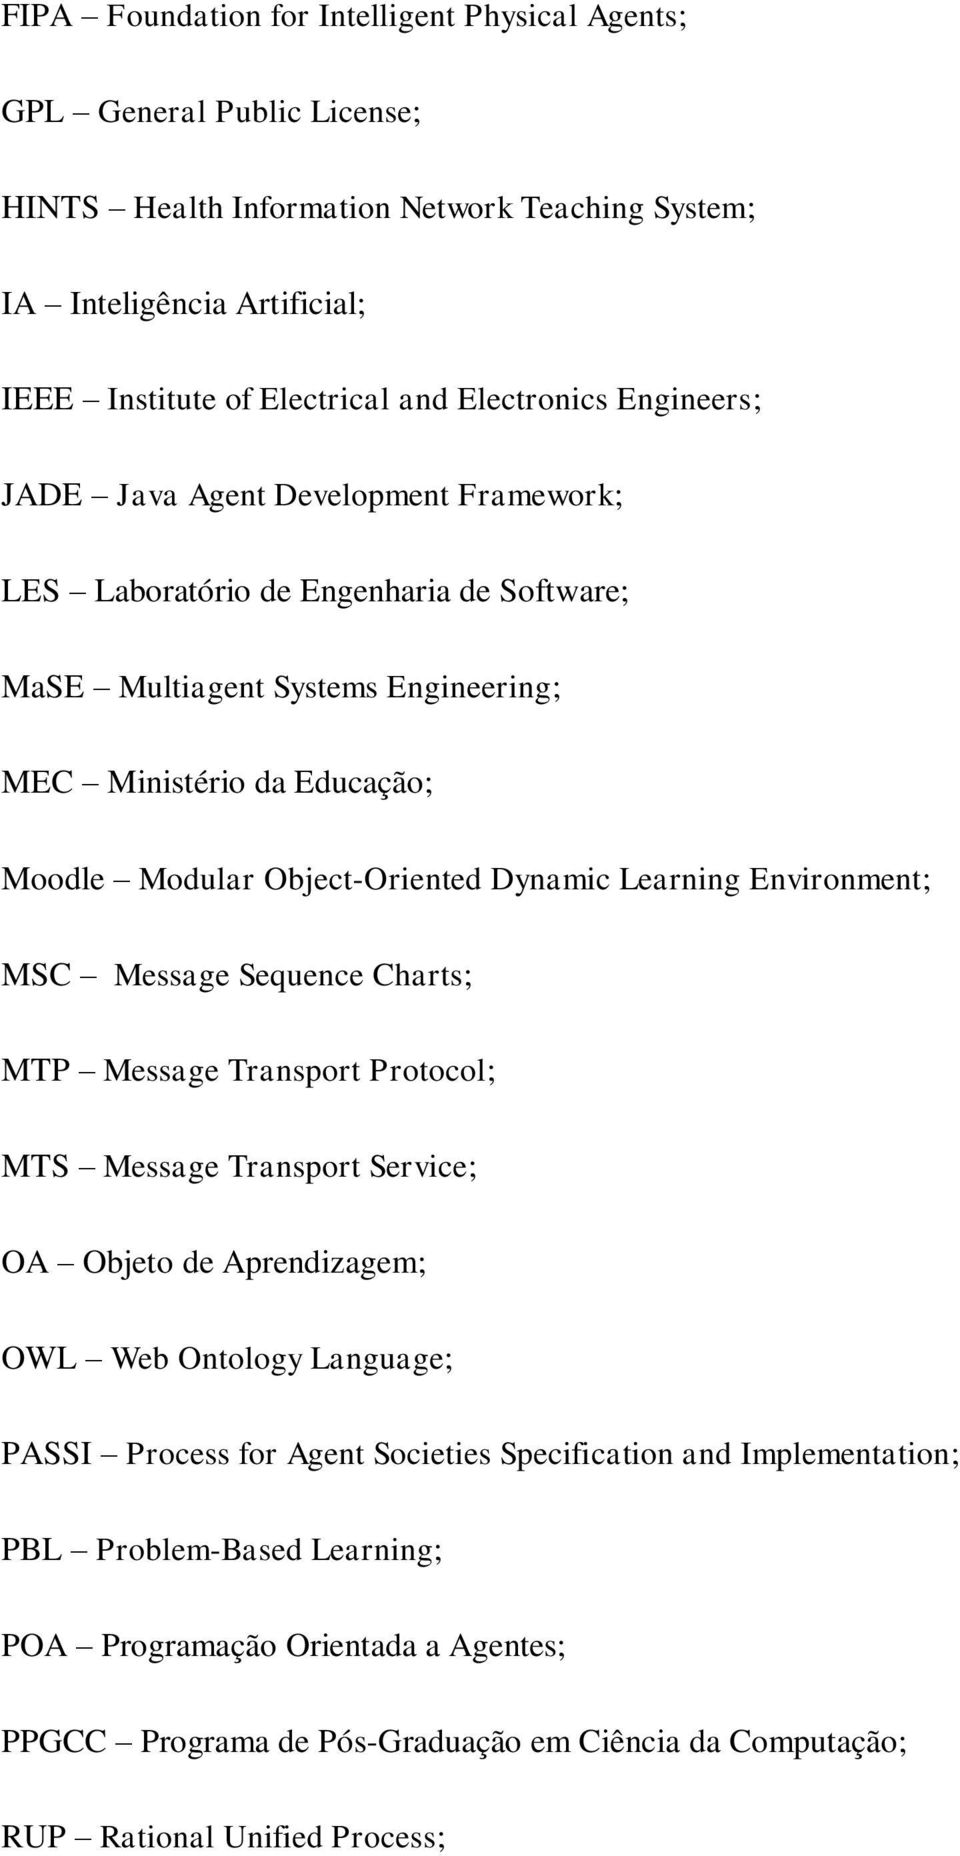 Object-Oriented Dynamic Learning Environment; MSC Message Sequence Charts; MTP Message Transport Protocol; MTS Message Transport Service; OA Objeto de Aprendizagem; OWL Web Ontology Language;